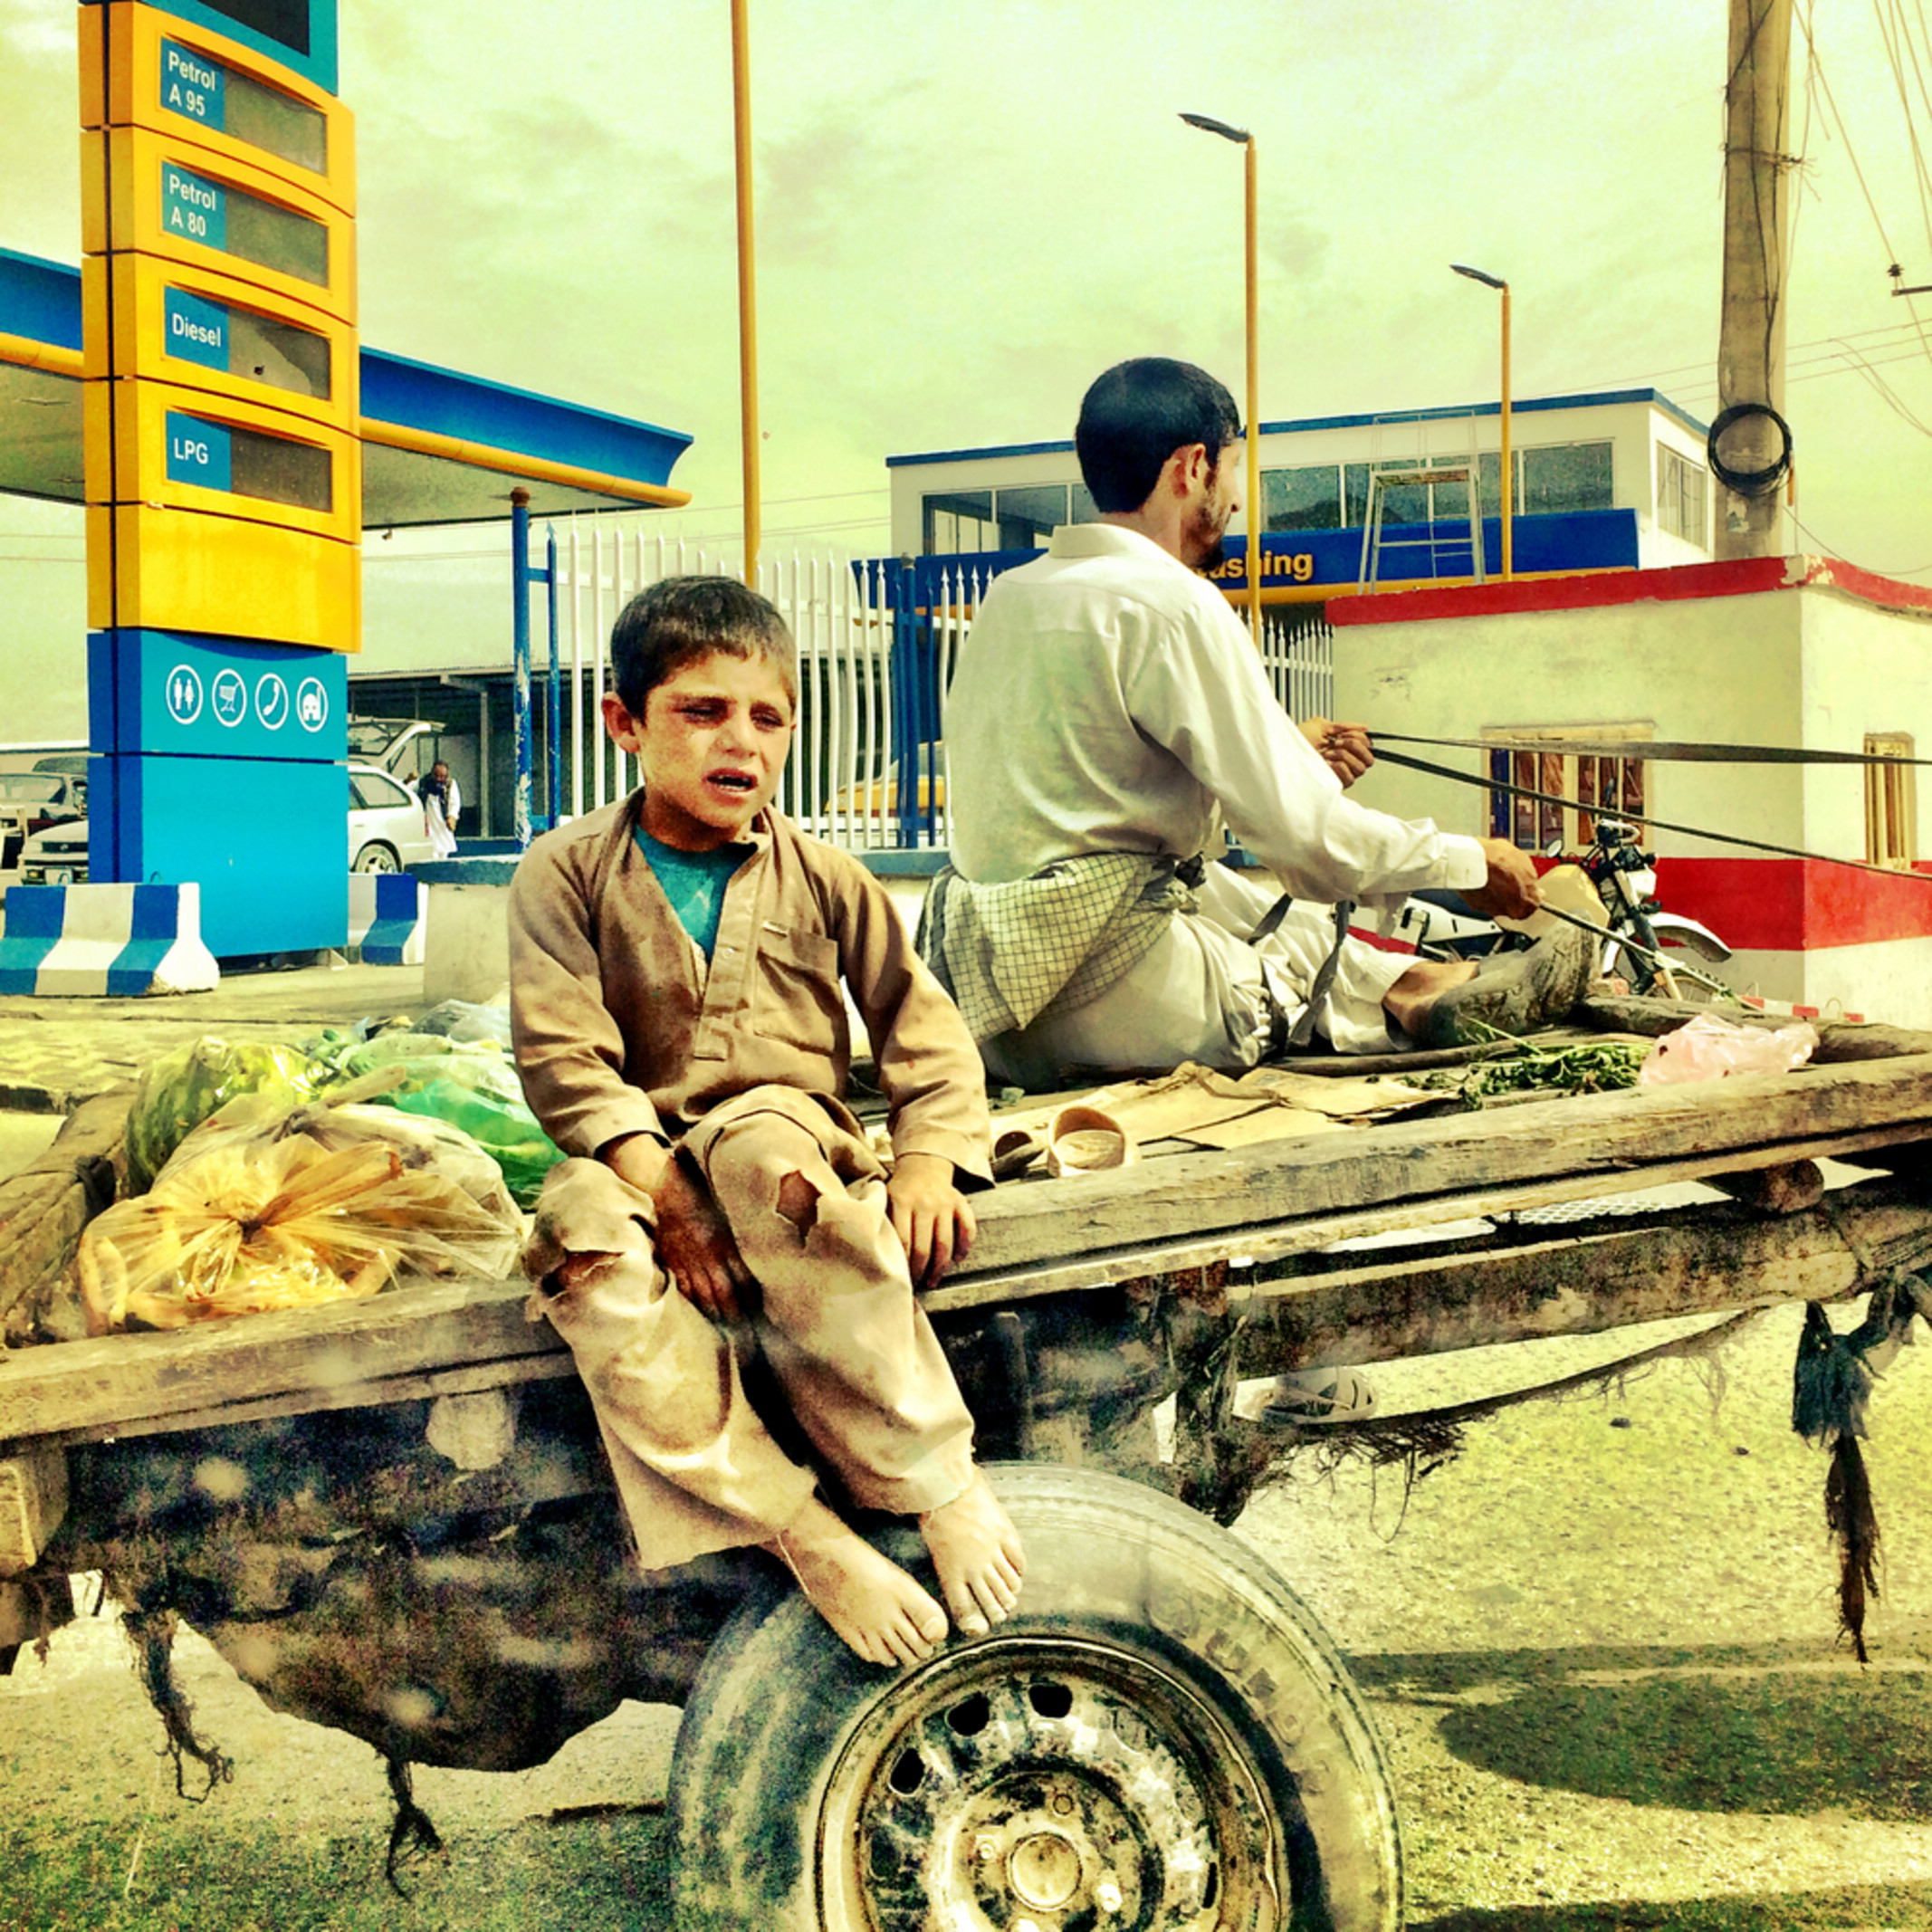 20652644 daily commute  kabul afg june 2015 hce8al